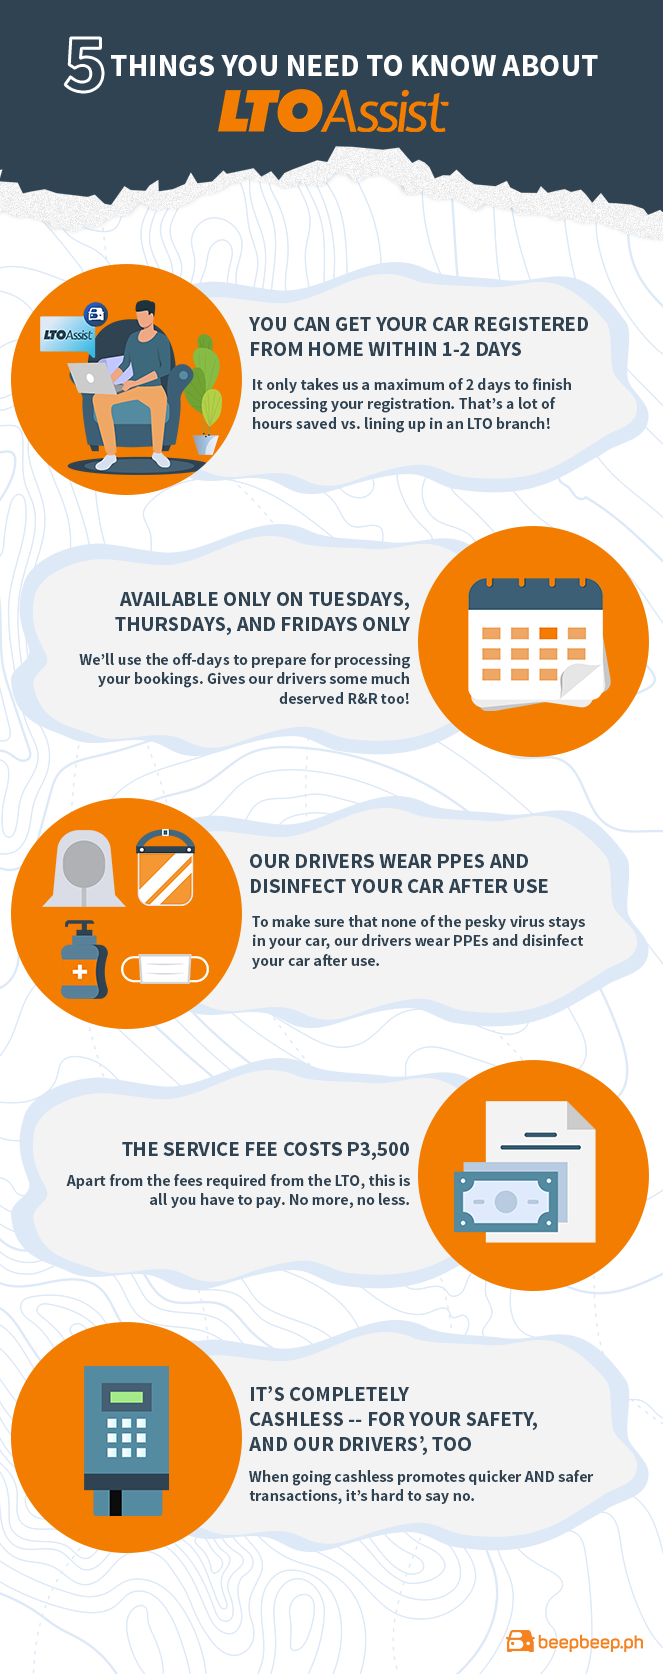 infographic lto assist relaunch available registration renewal manila covid safe reliable convenient quick and easy car ownership vehicle change